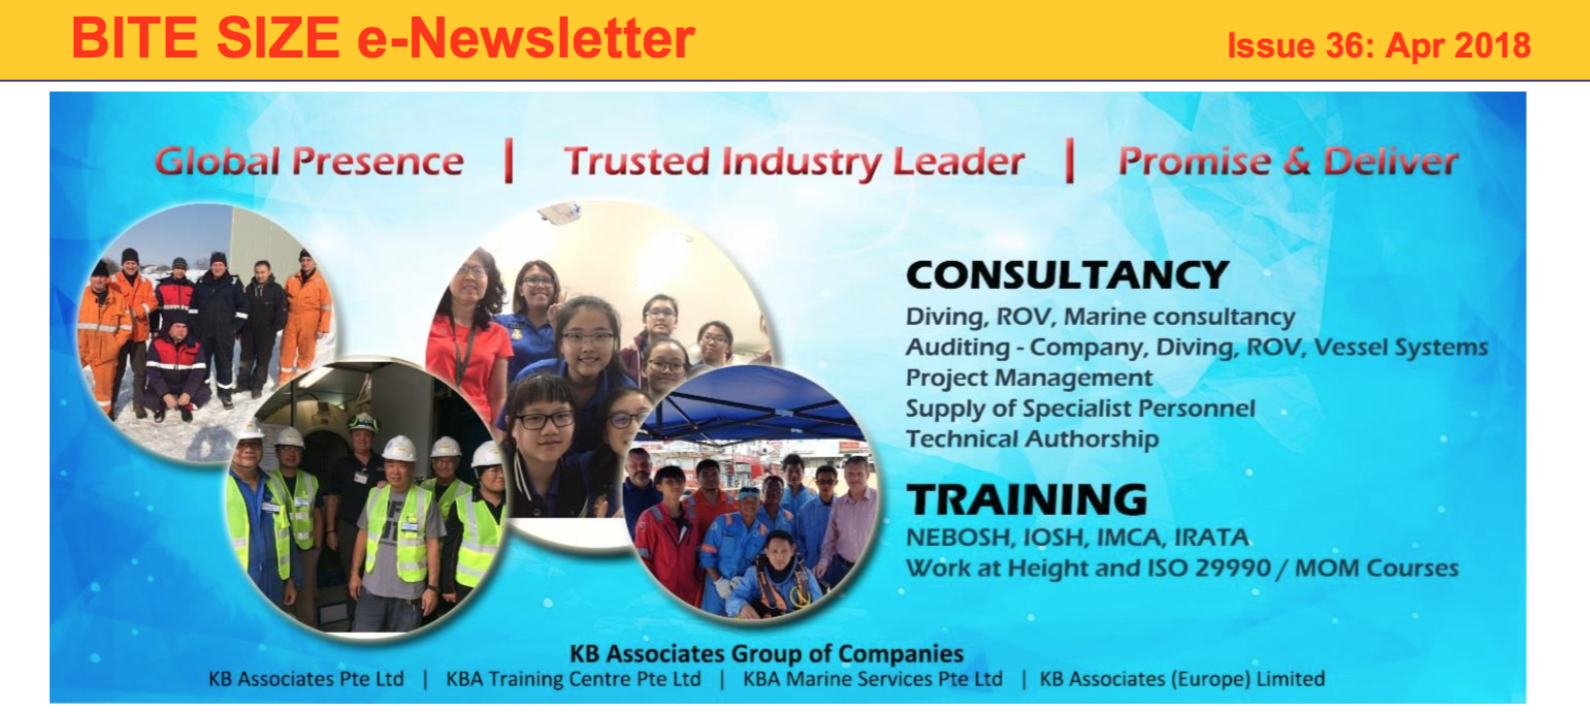 Byte Size e-Newsletter Issue #36 April 2018